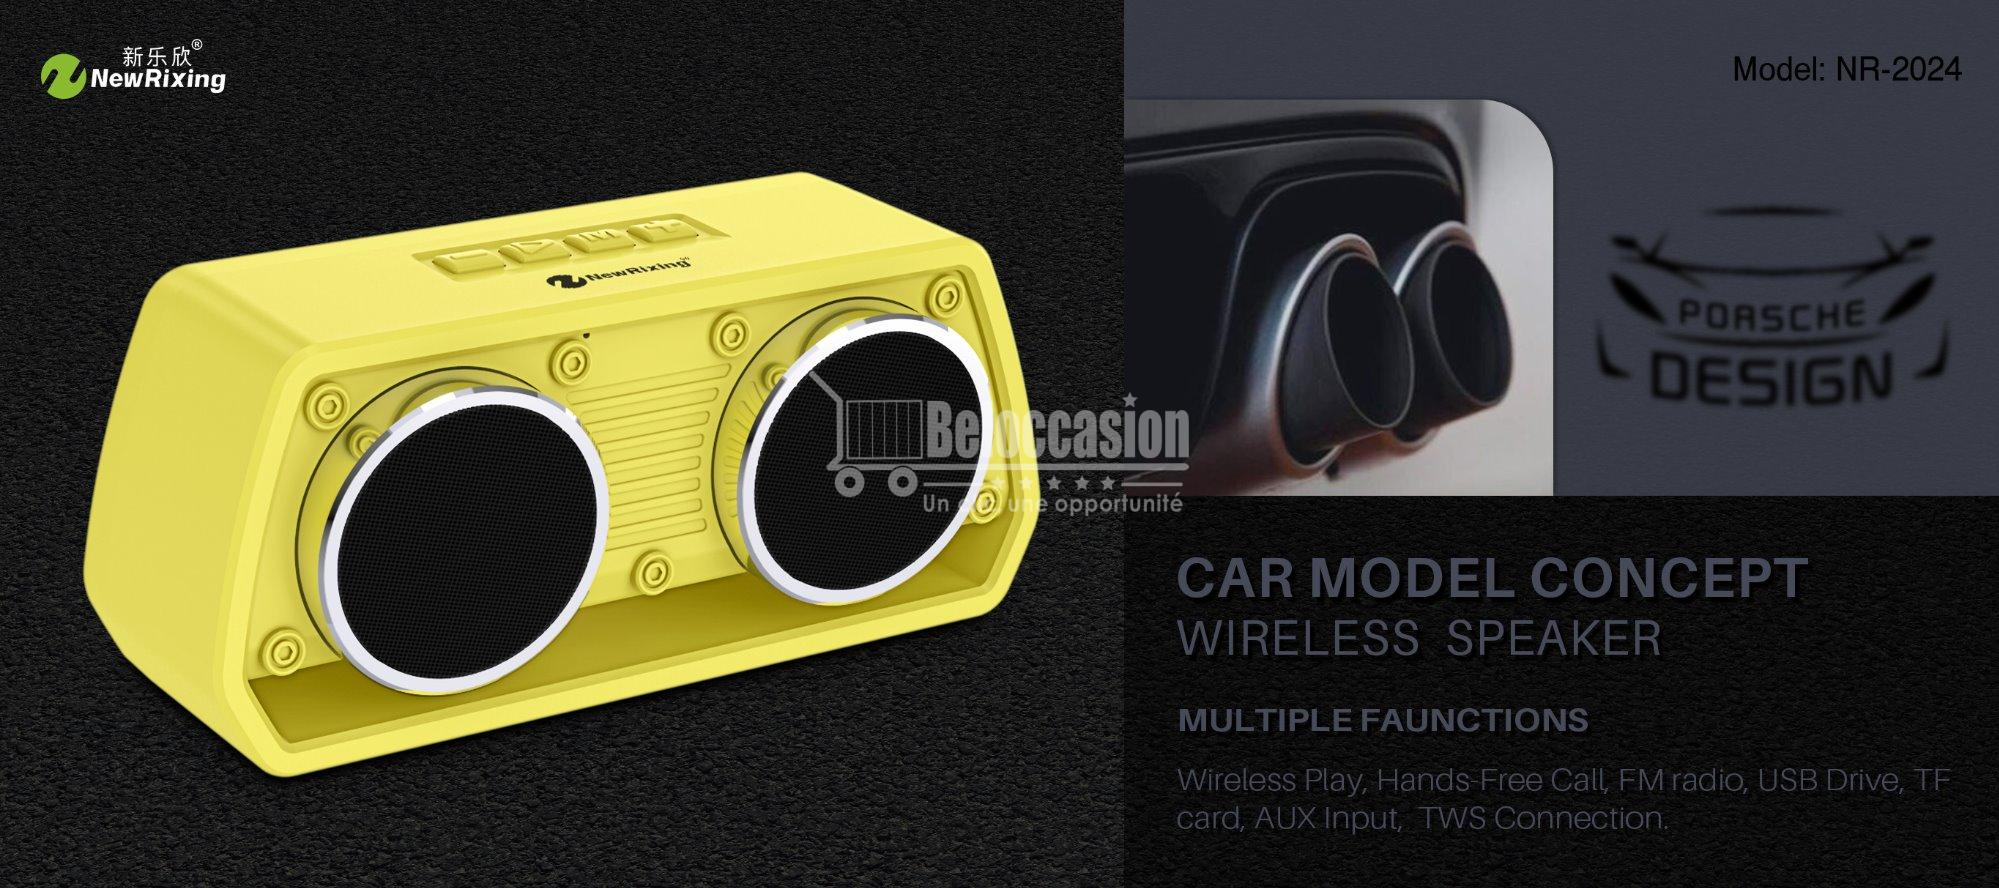 NewRixing NR-2024 Bluetooth Loudspeaker, Wireless Speakers Manufacturer, Sports Mini Speaker Exporters, Comfortable hand feeling, TWS function. beloccasion.ma